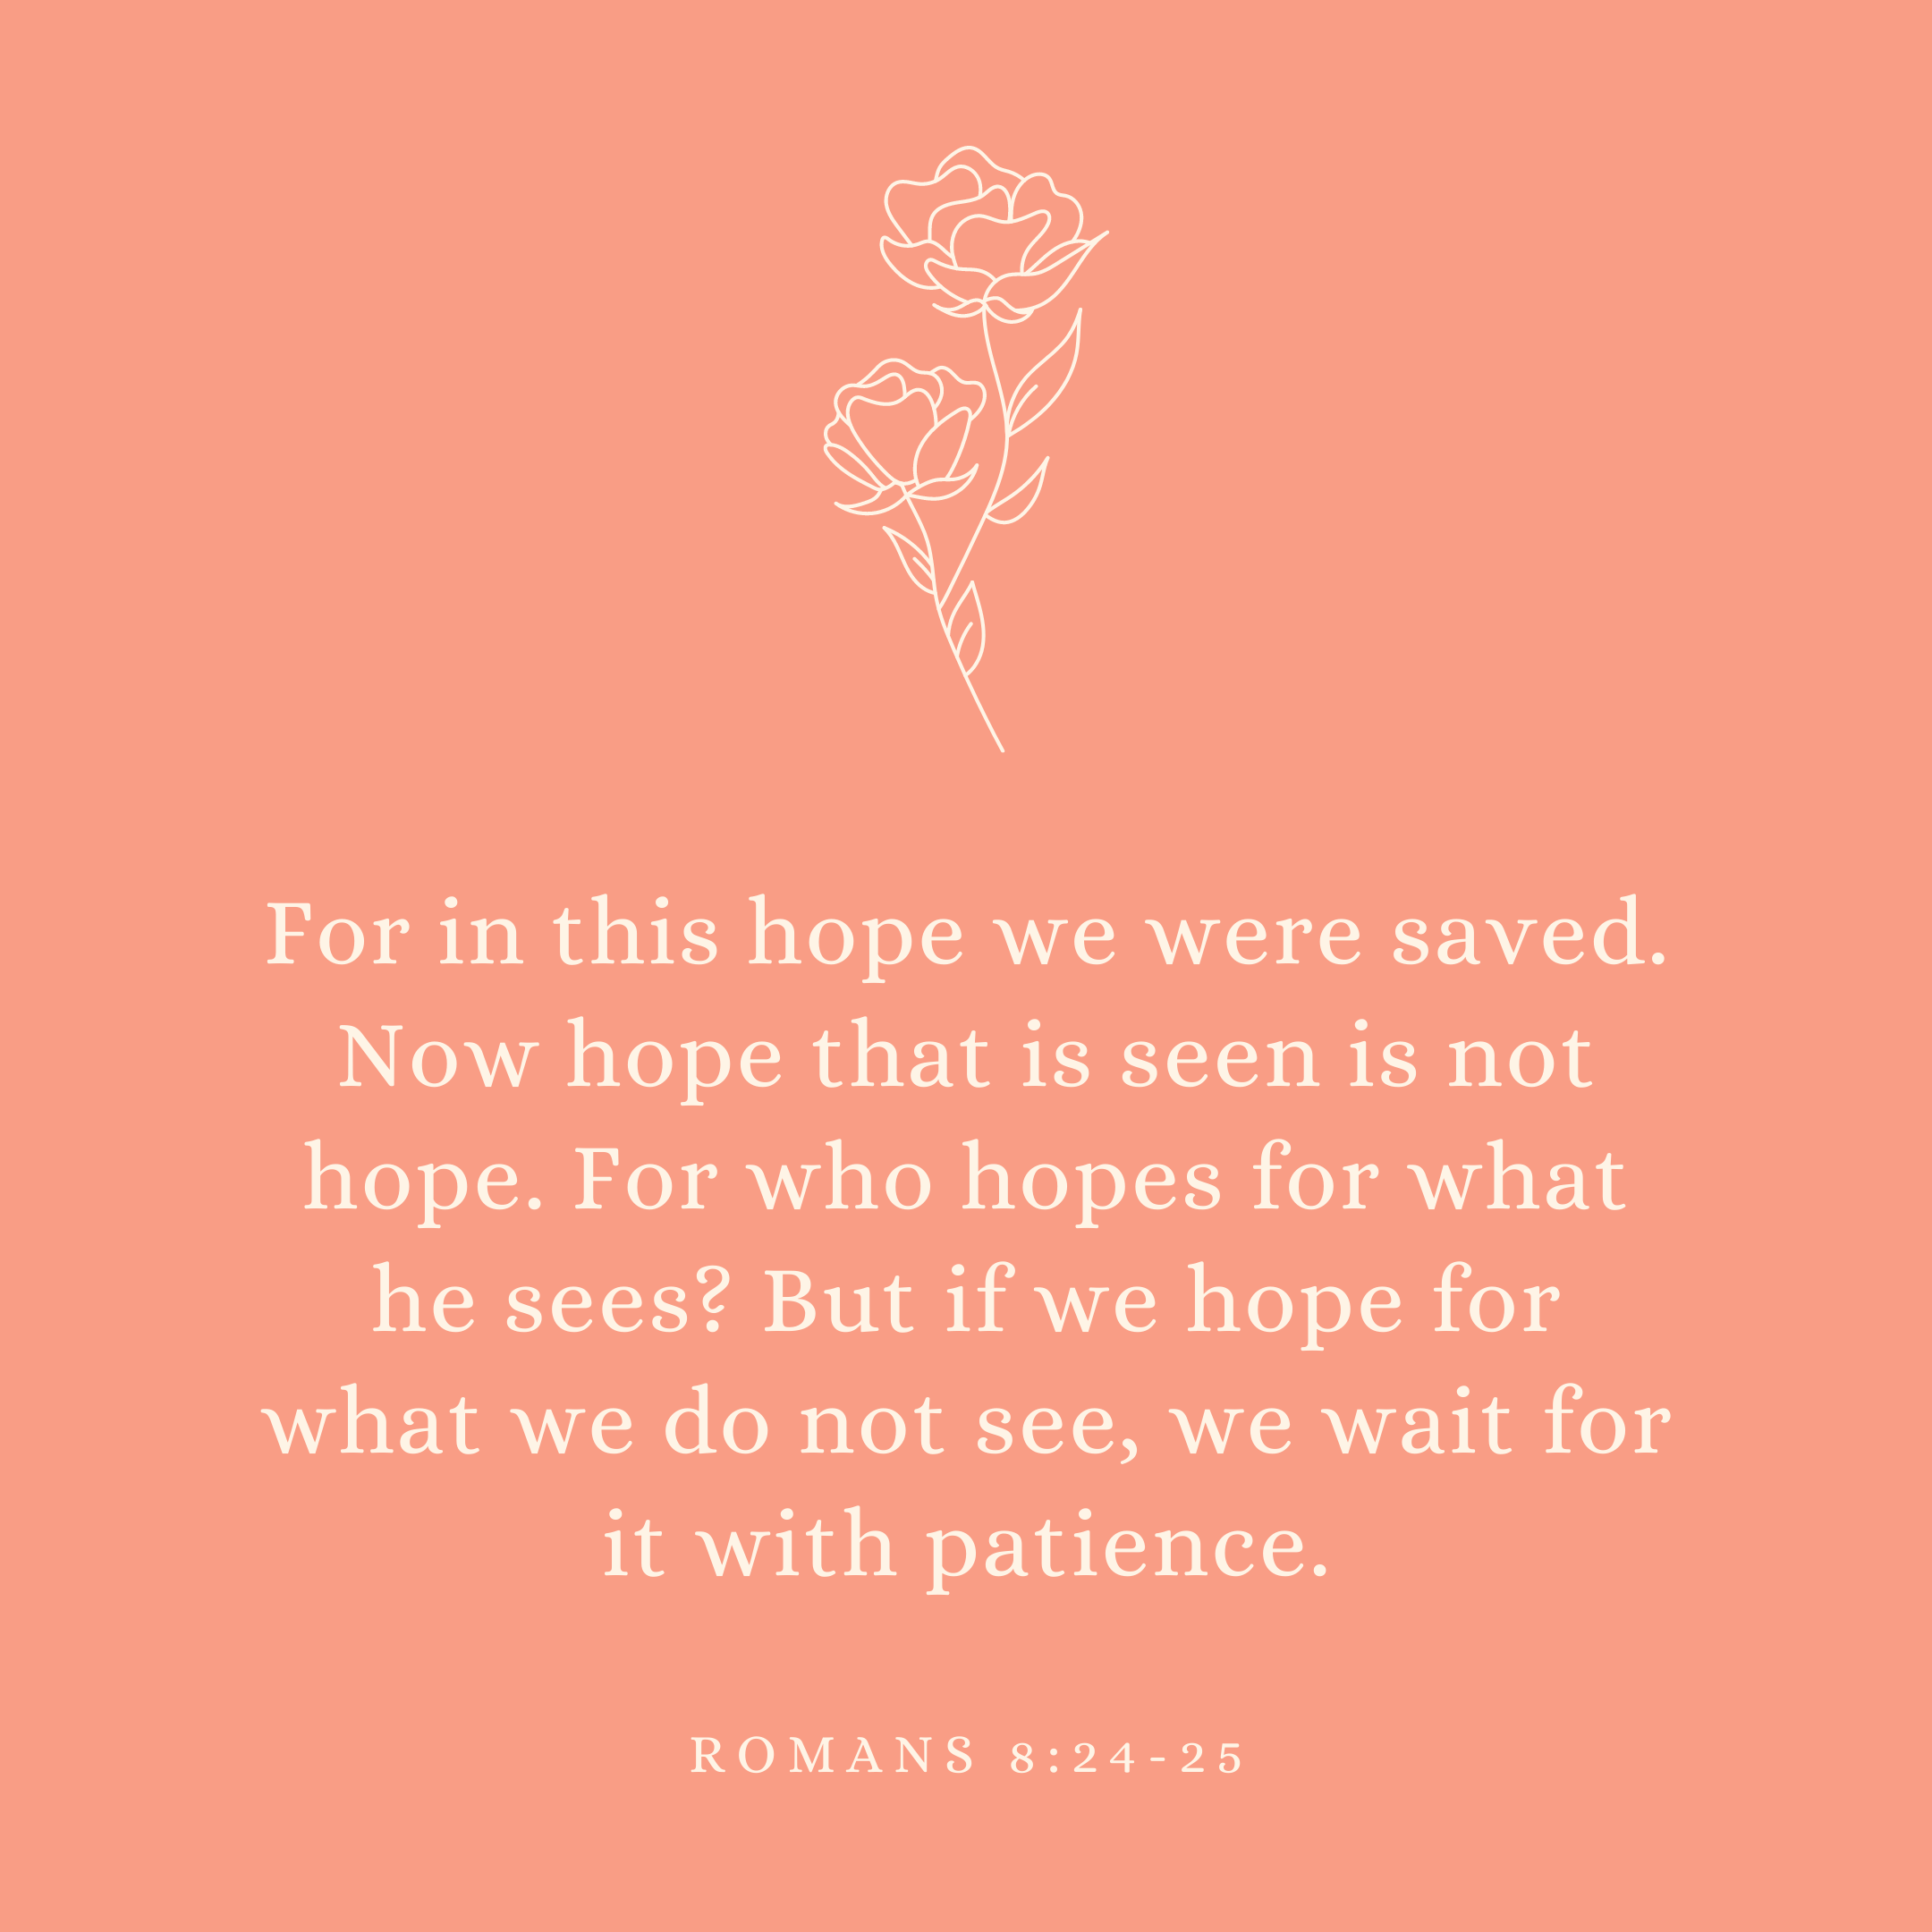 Romans 8:24-25 For in this hope we were saved. Now hope that is seen is not hope. For who hopes for what he sees? But if we hope for what we do not see, we wait for it with patience.